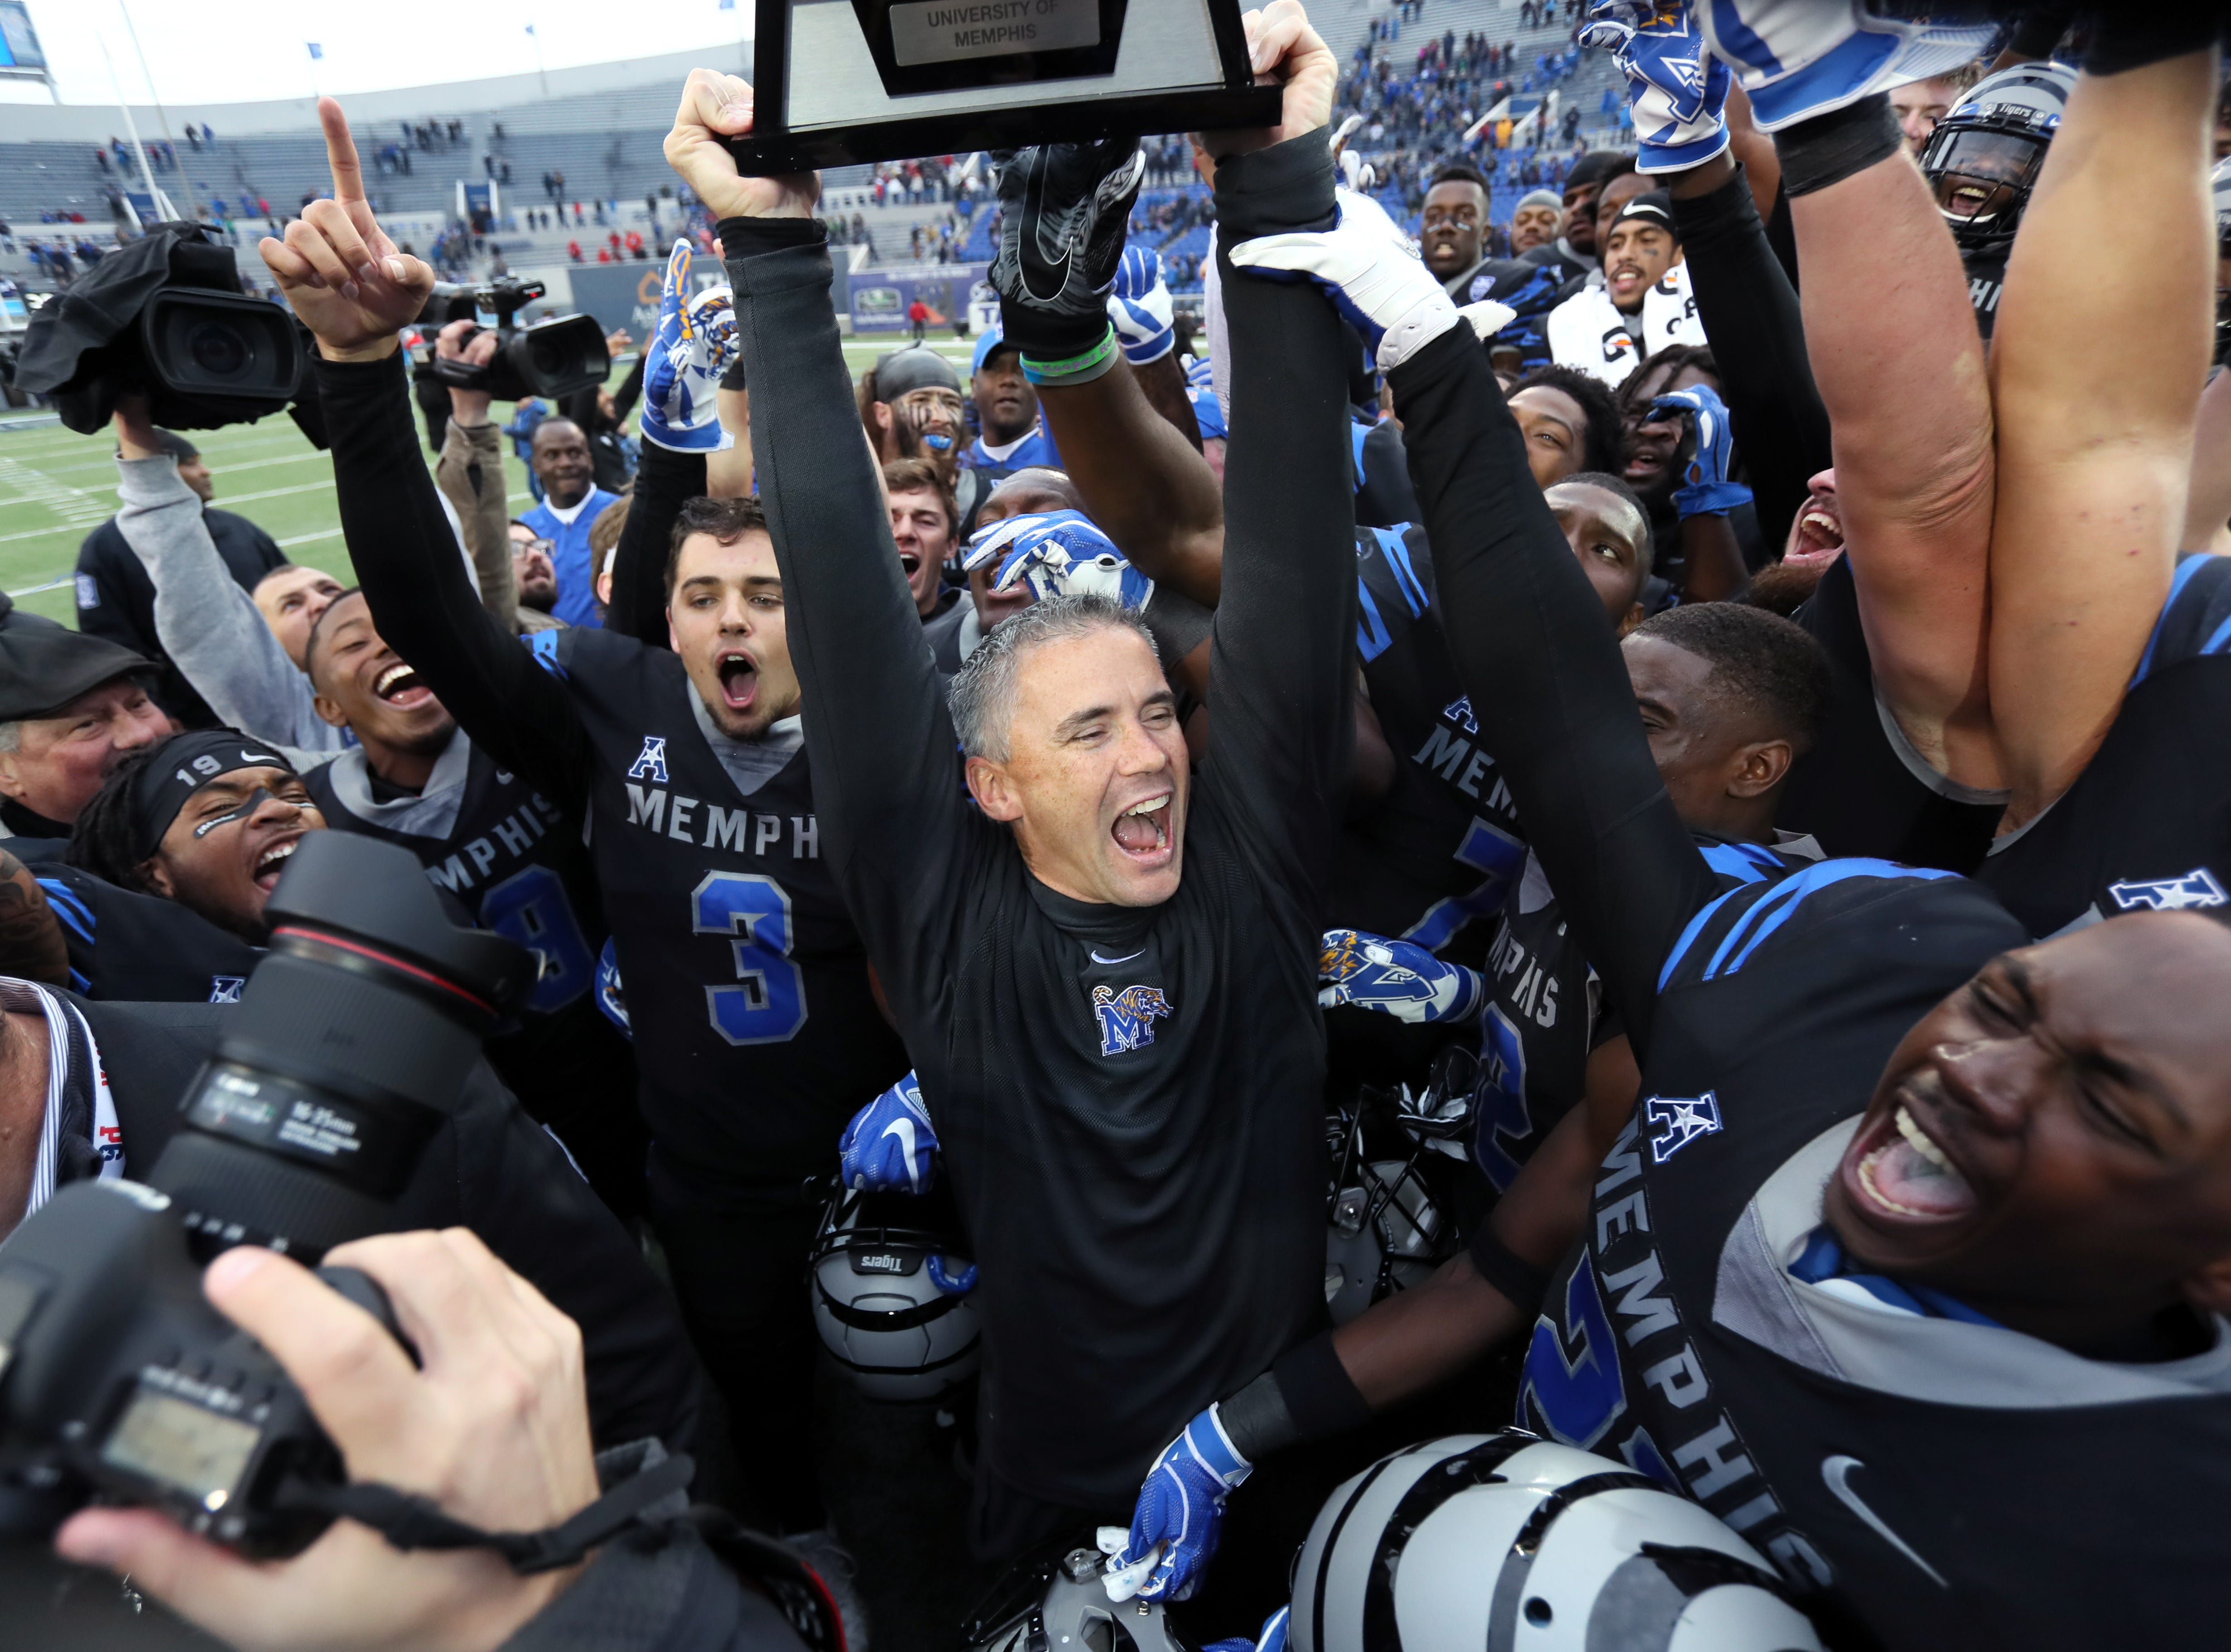 Memphis Head Coach Mike Norvell celebrates with his players as they defeat the Houston Cougars to win the AAC West title 52-31 at the Liberty Bowl on Friday, Nov. 23, 2018.